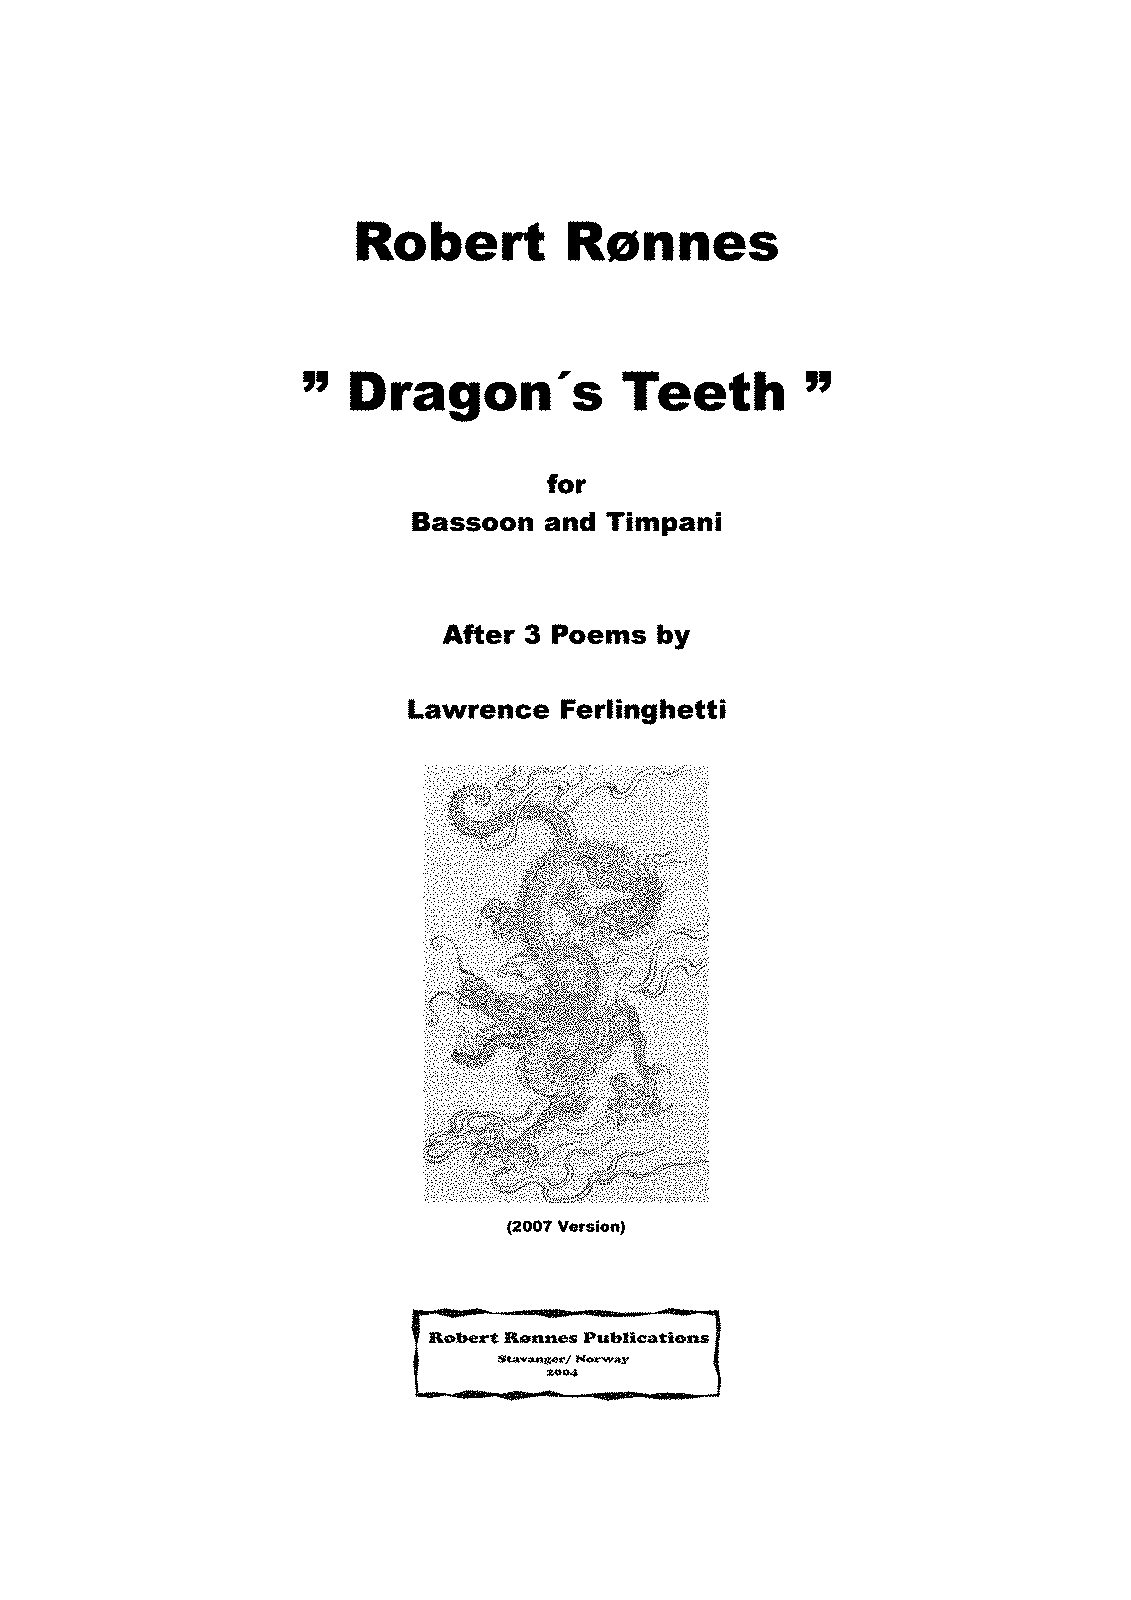 PMLP177729-Robert Ronnes DragonsTeeth.Bassoon andTimpani.pdf